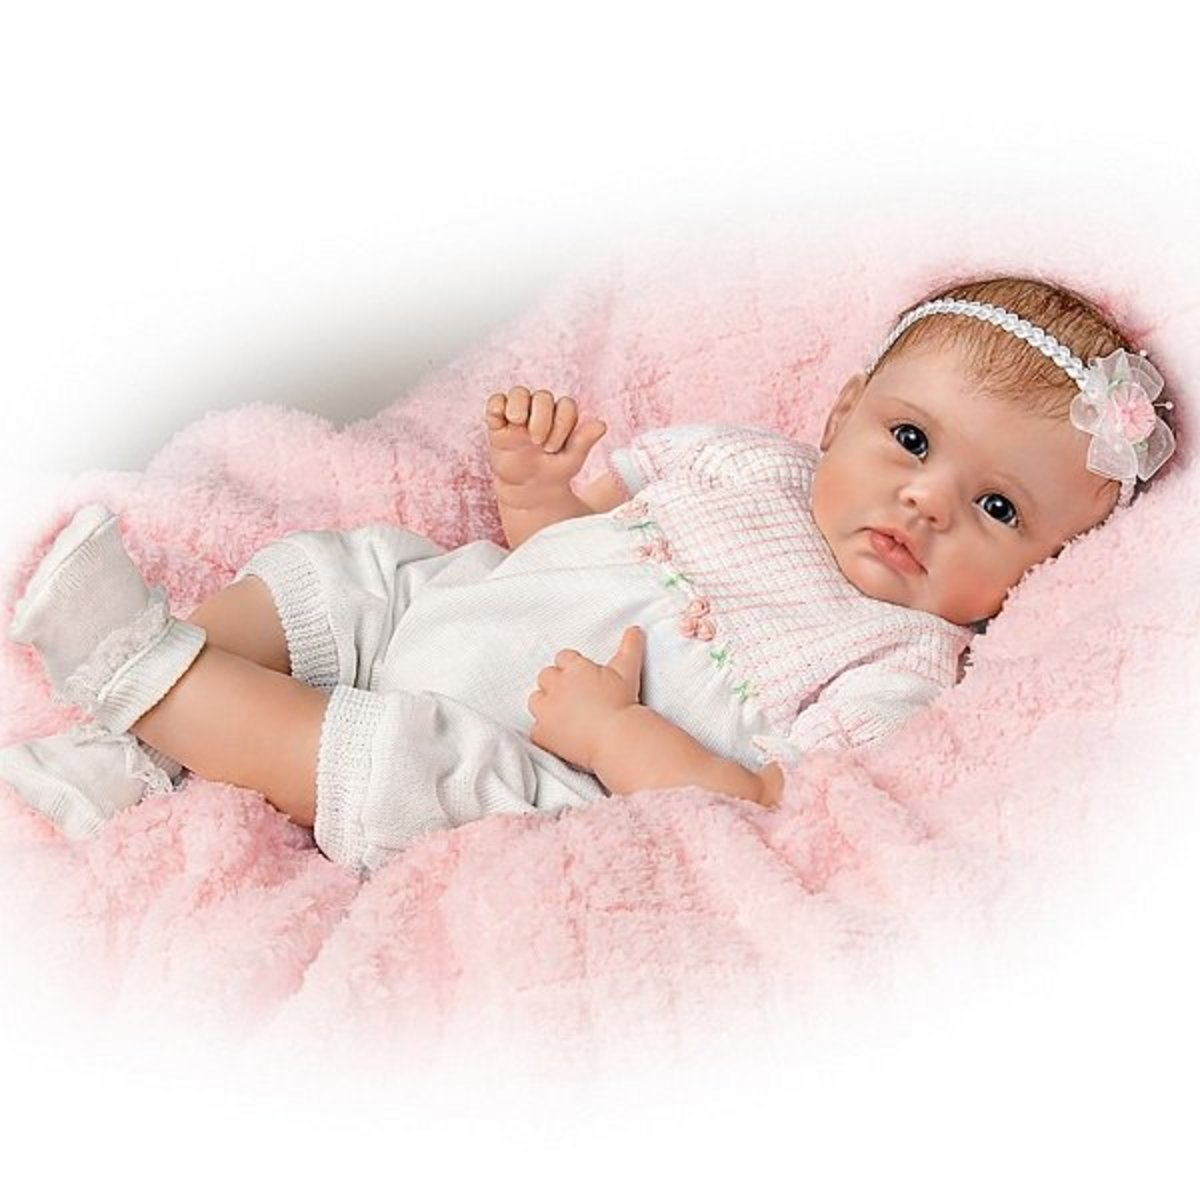 Breathing Baby Dolls: Most Cute Real Looking Baby Dolls That Breathe